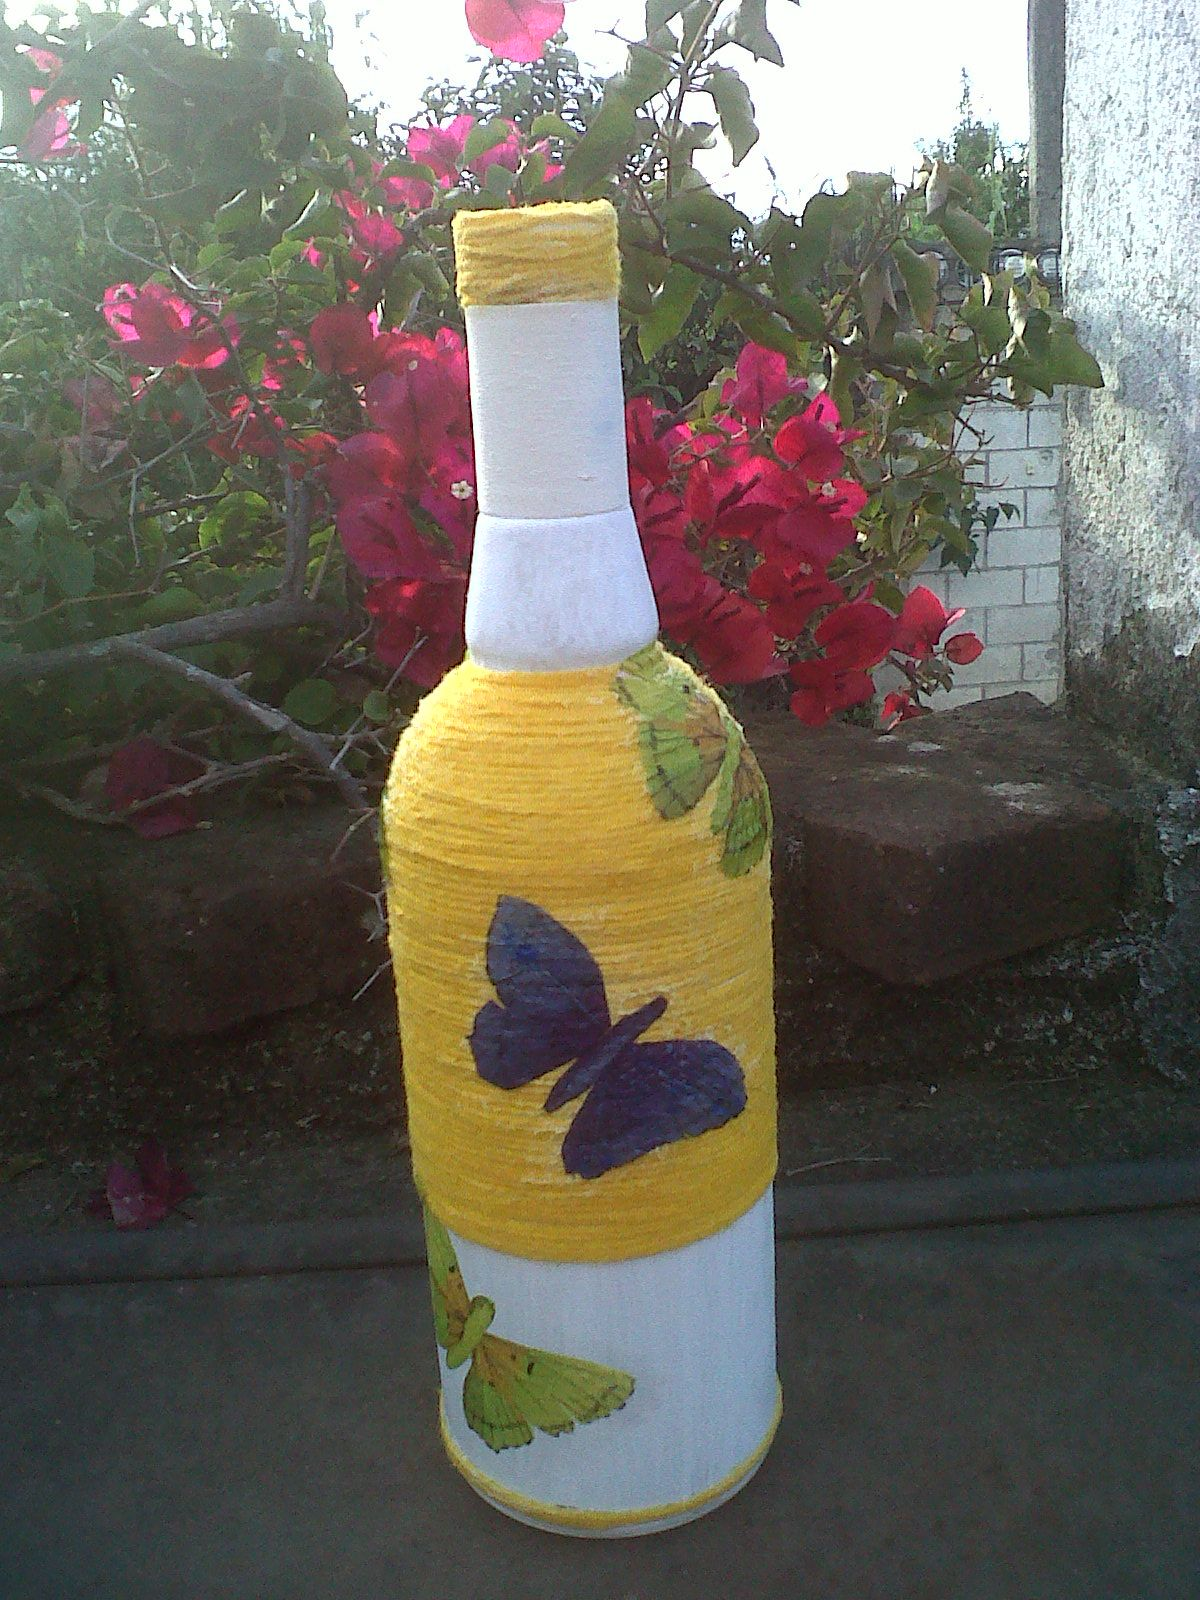 Botellas De Vidrio Decoradas Botella Decorada Con Lana Y Decoupage Frascos Y Botellas